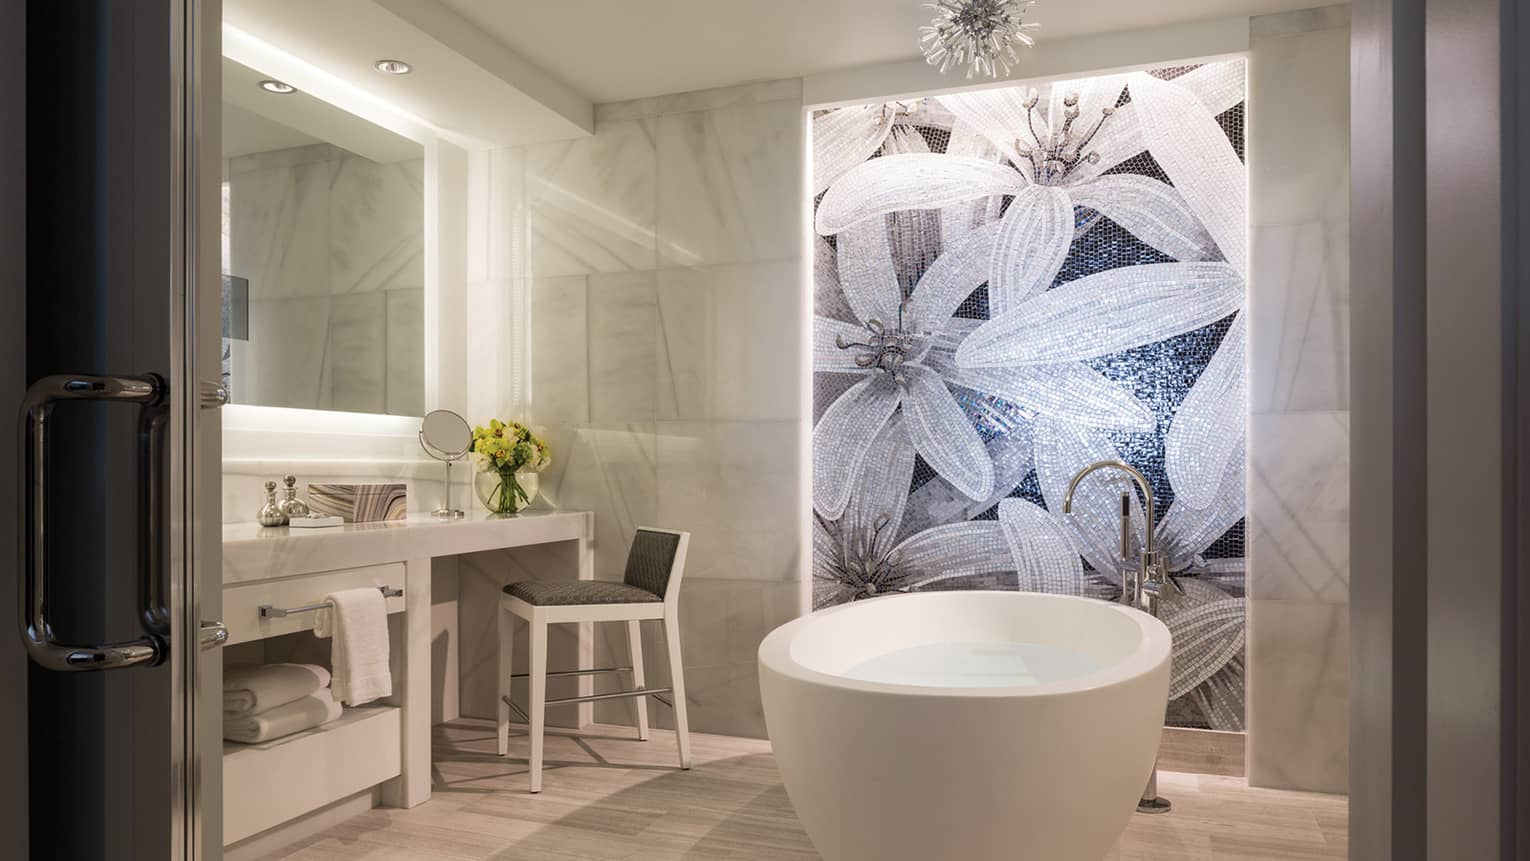 Grand Suite master bathroom white free-standing tub under mosaic tile wall with floral pattern, vanity